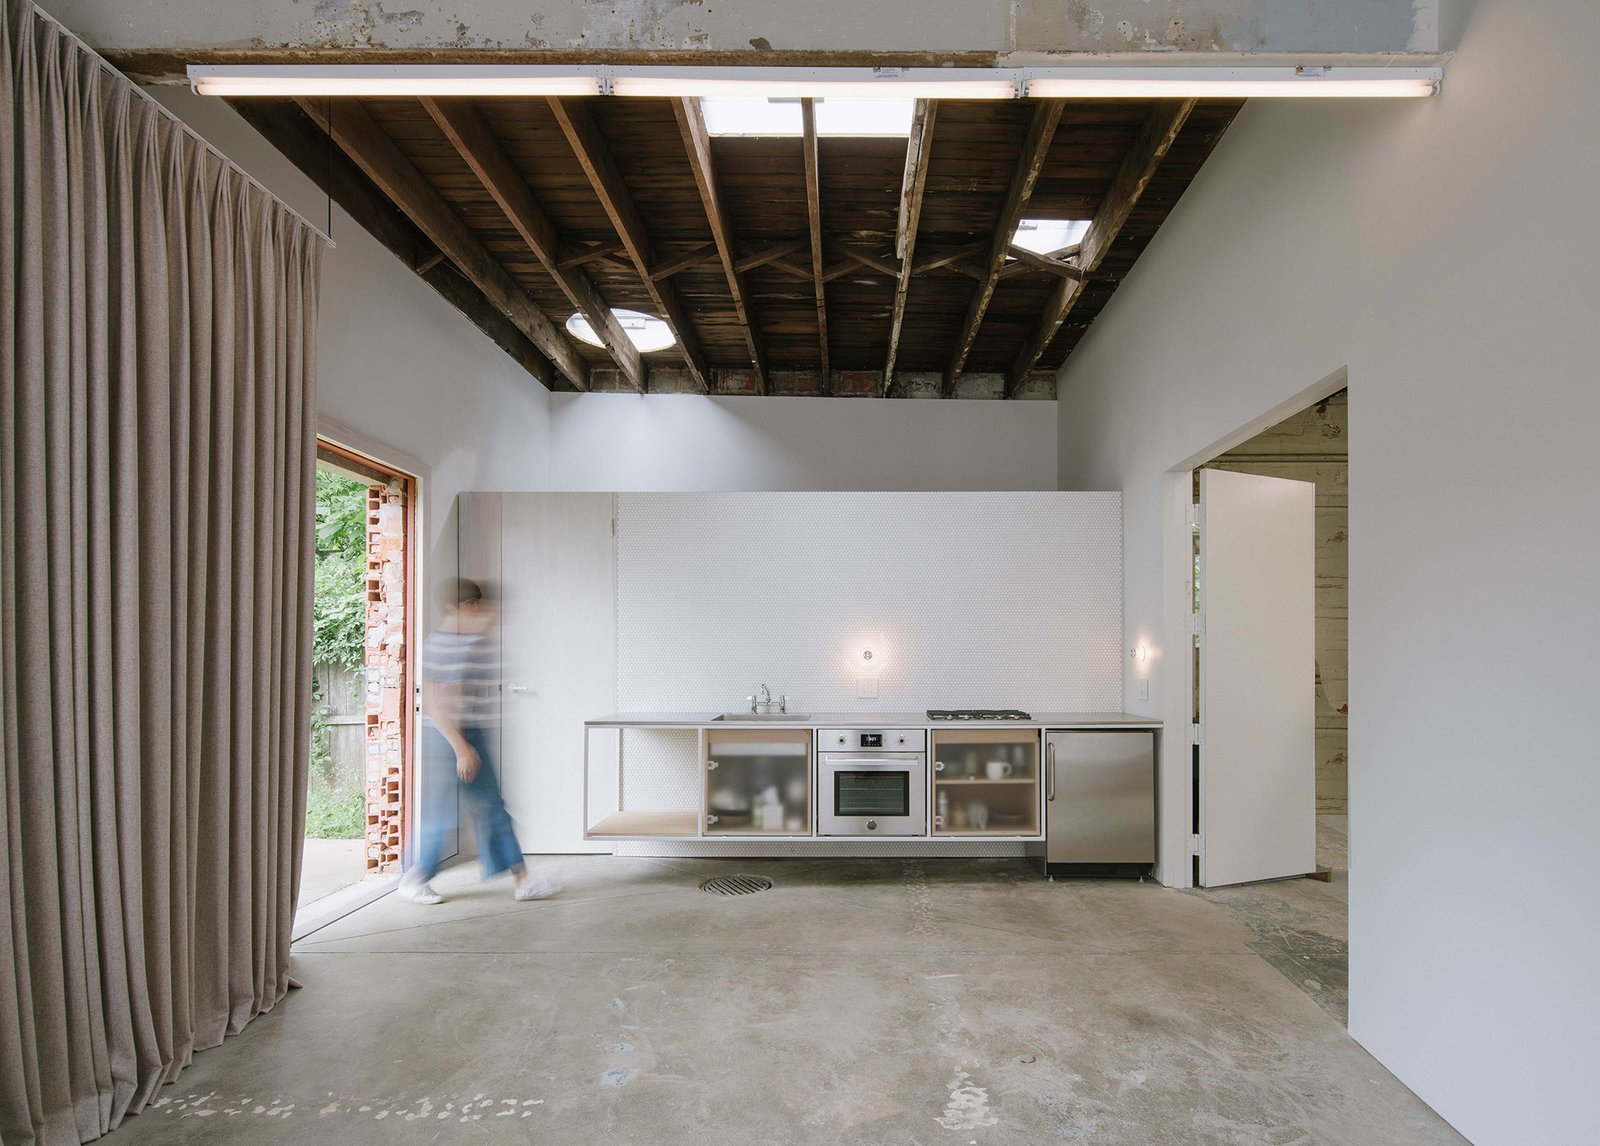 Kitchen, Wall Oven, Concrete, Ceiling, Range, Refrigerator, Wall, and Drop In Instead of clearing out the building and designing the interior from scratch, the designers Davidson and Rafailidis reinterpreted the existing space.  Best Kitchen Refrigerator Wall Oven Concrete Wall Photos from A 1920s Masonry Garage Is Reborn as a Flexible Live/Work Space